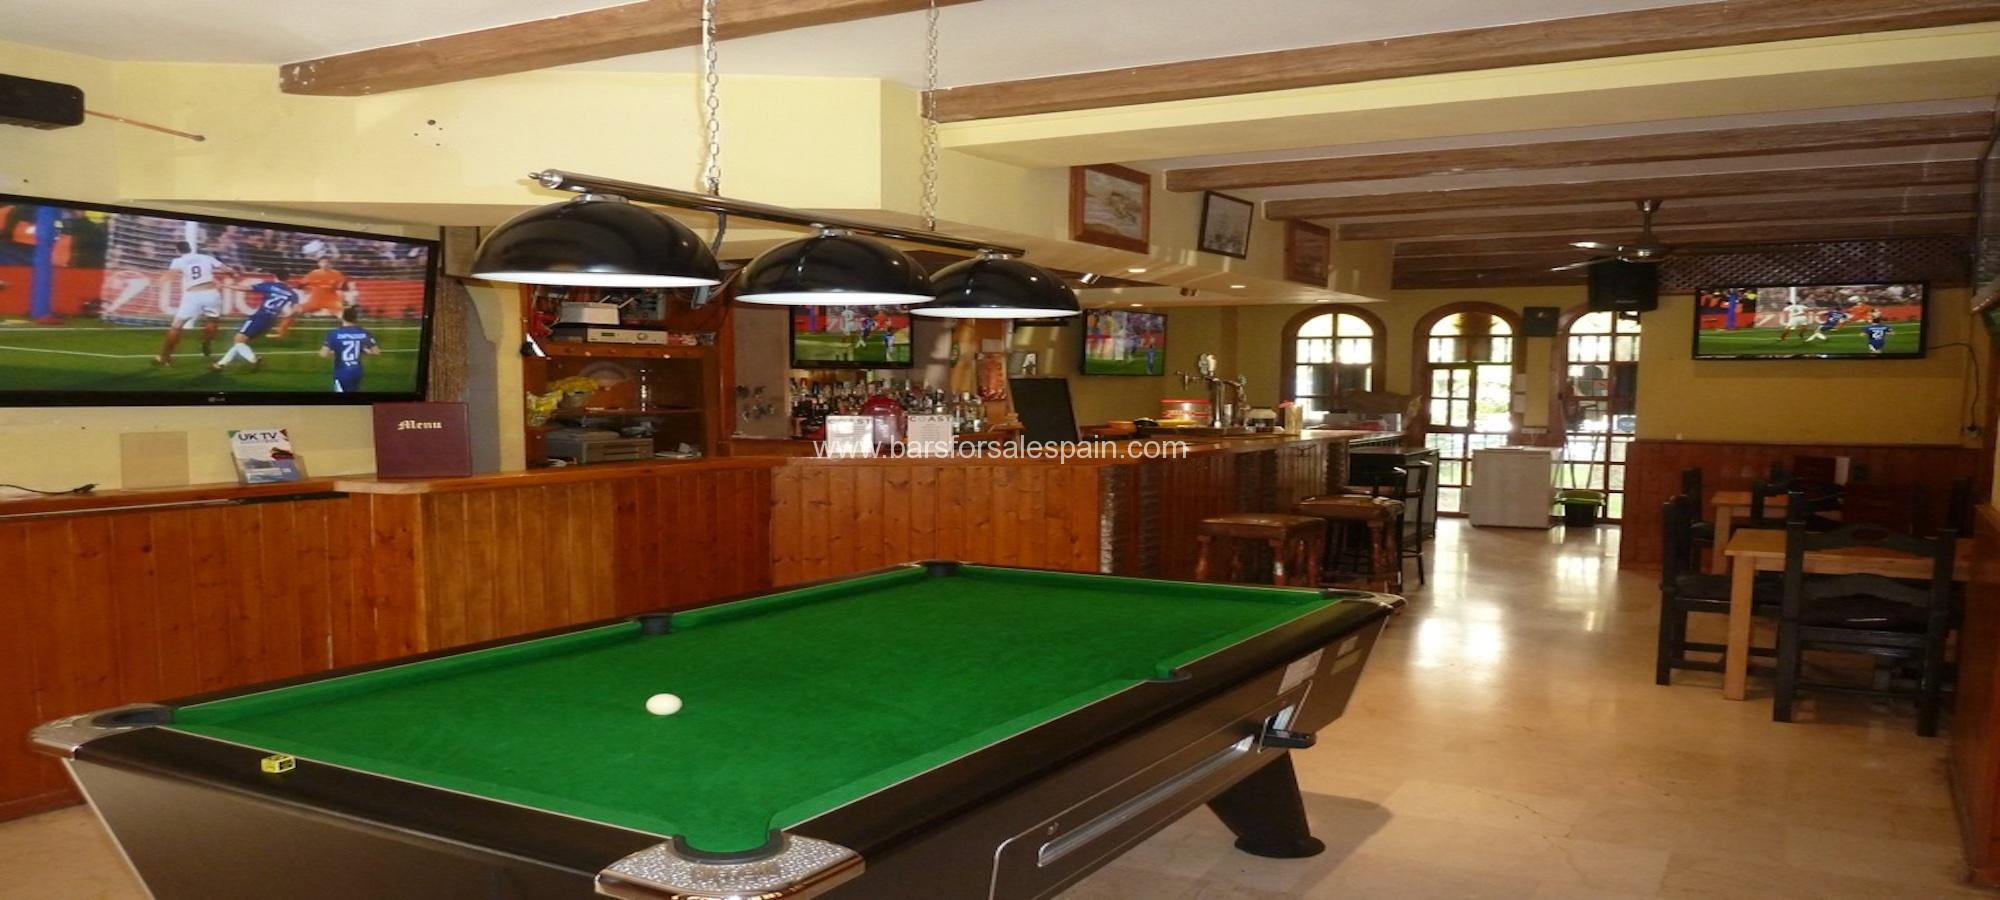 Sports Bar for Lease in Fuengirola, Costa del Sol, Spain